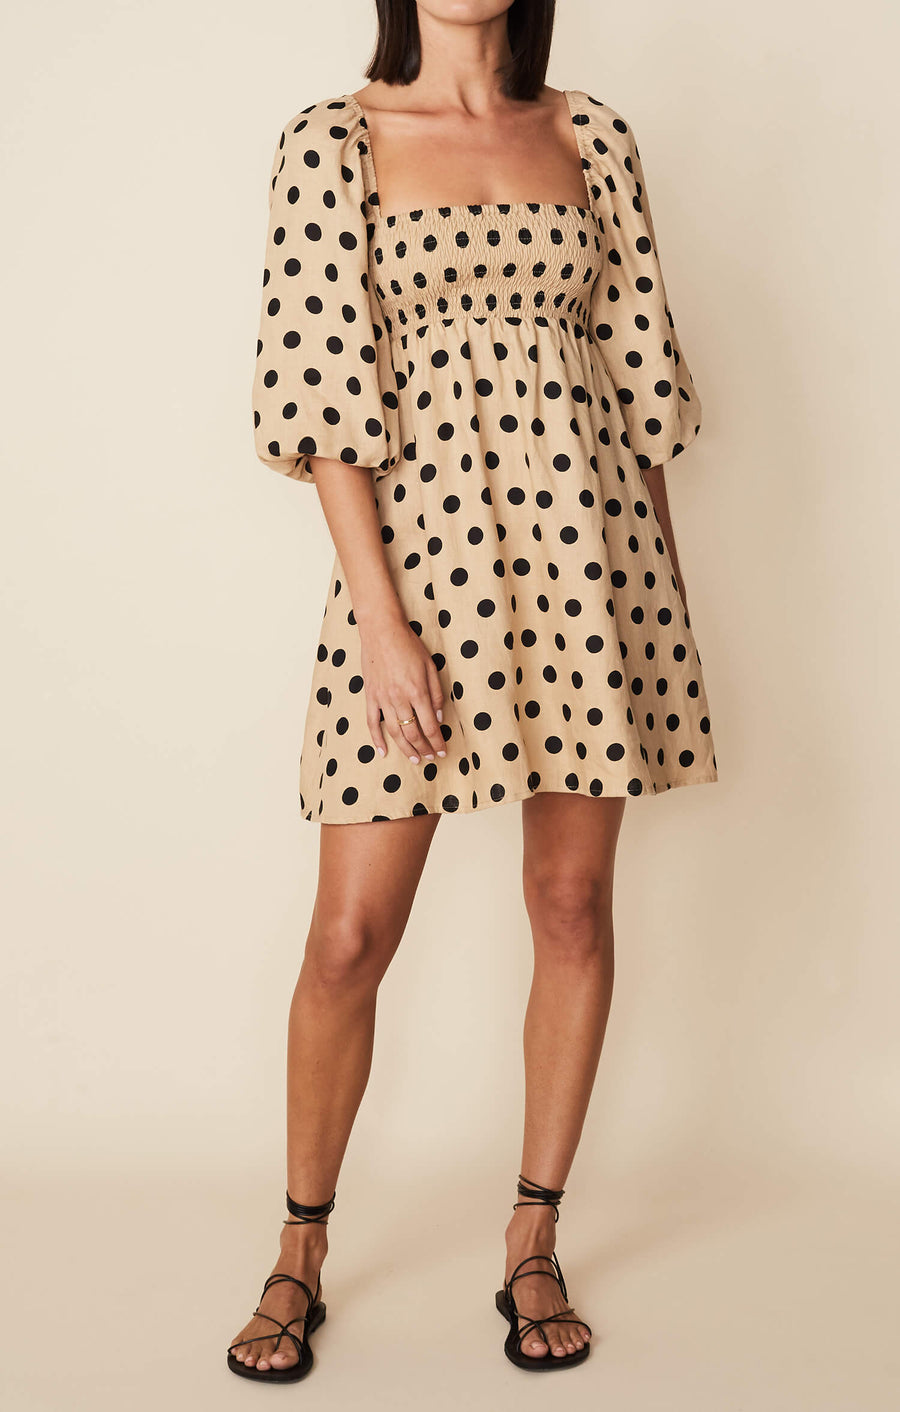 Faithfull The Brand Dallia Mini Dress in Emelda Dot Biscuit from The New Trend